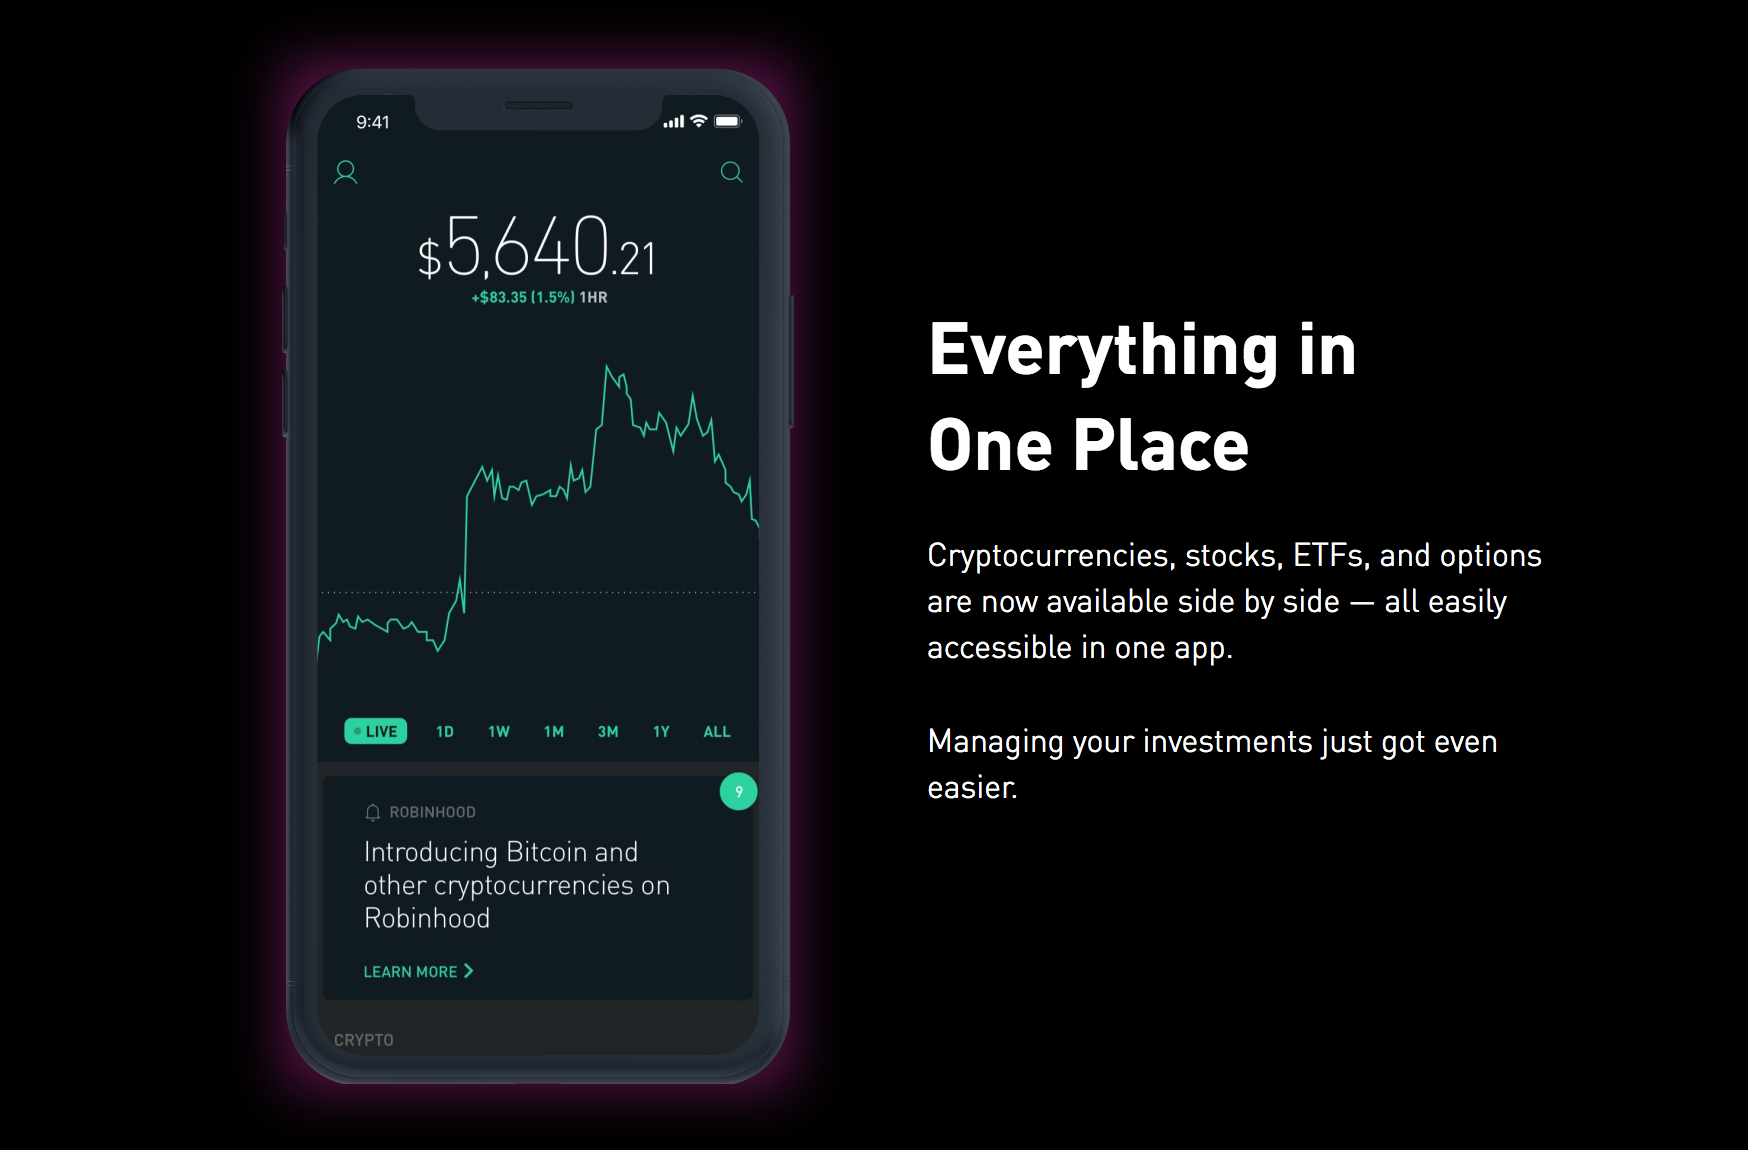 Litecoin Security Cryptocurrency With Robinhood App